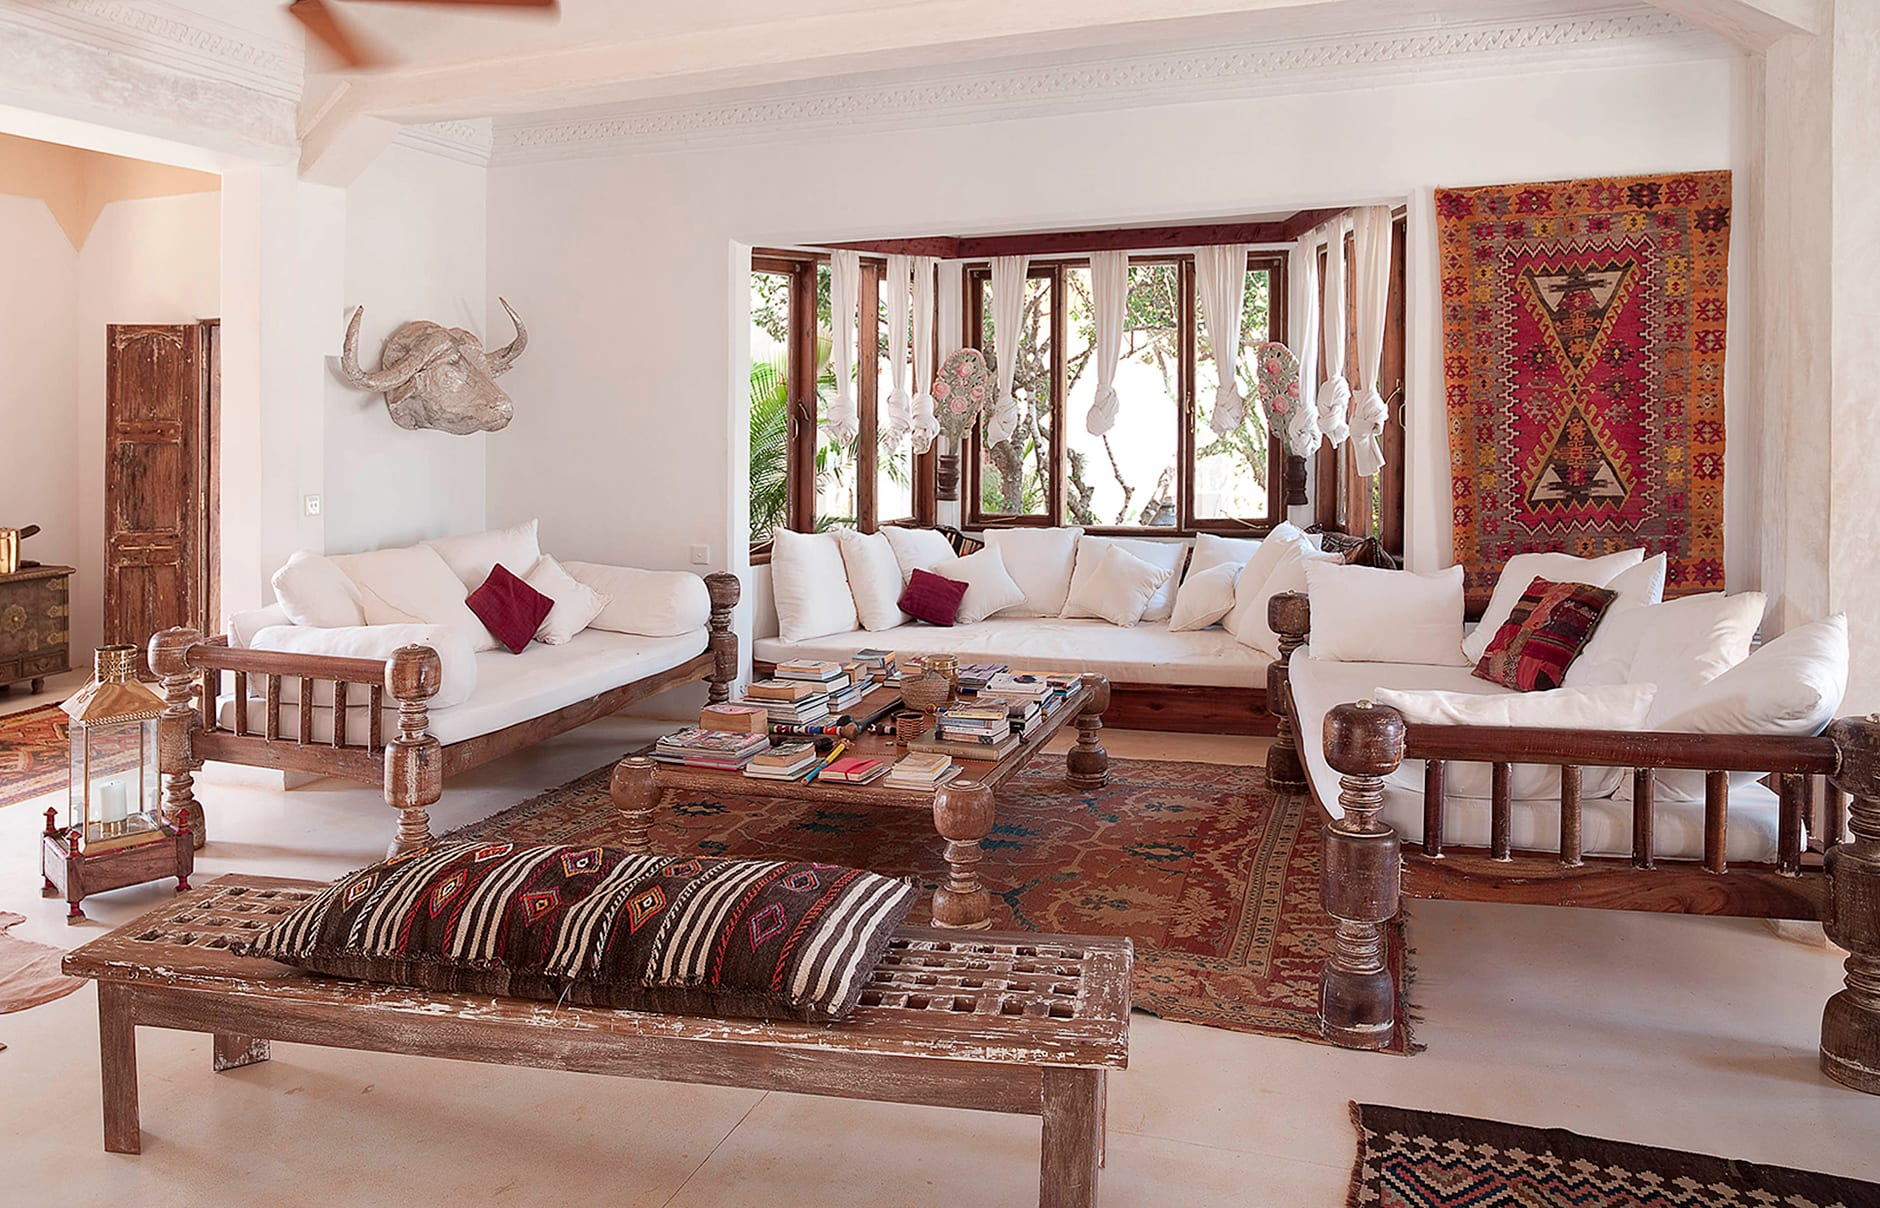 The Majlis, Lamu, Kenya. Hotel Review by TravelPlusStyle. Photo © The Majlis Hotel